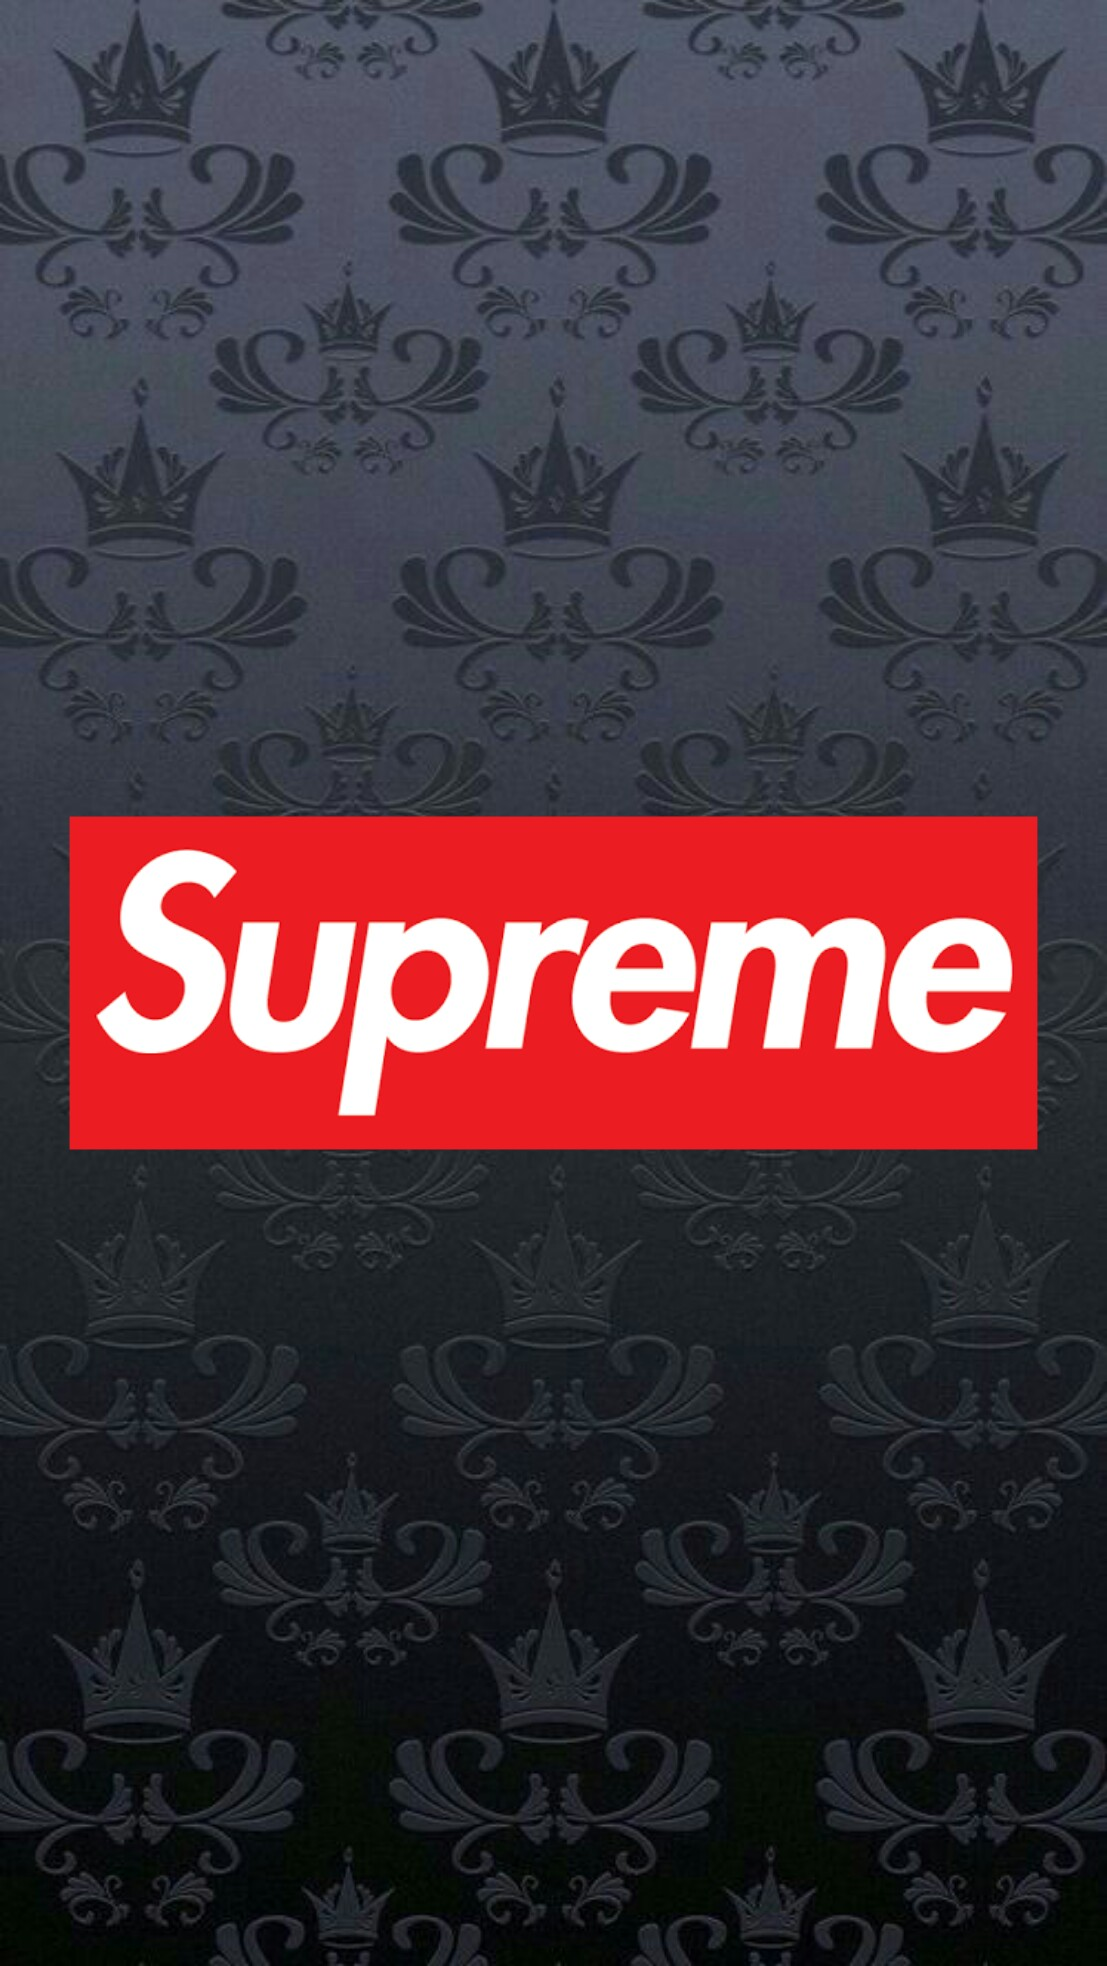 Supreme Floral Wallpaper Photo Is Cool Wallpapers Cool Wallpaper